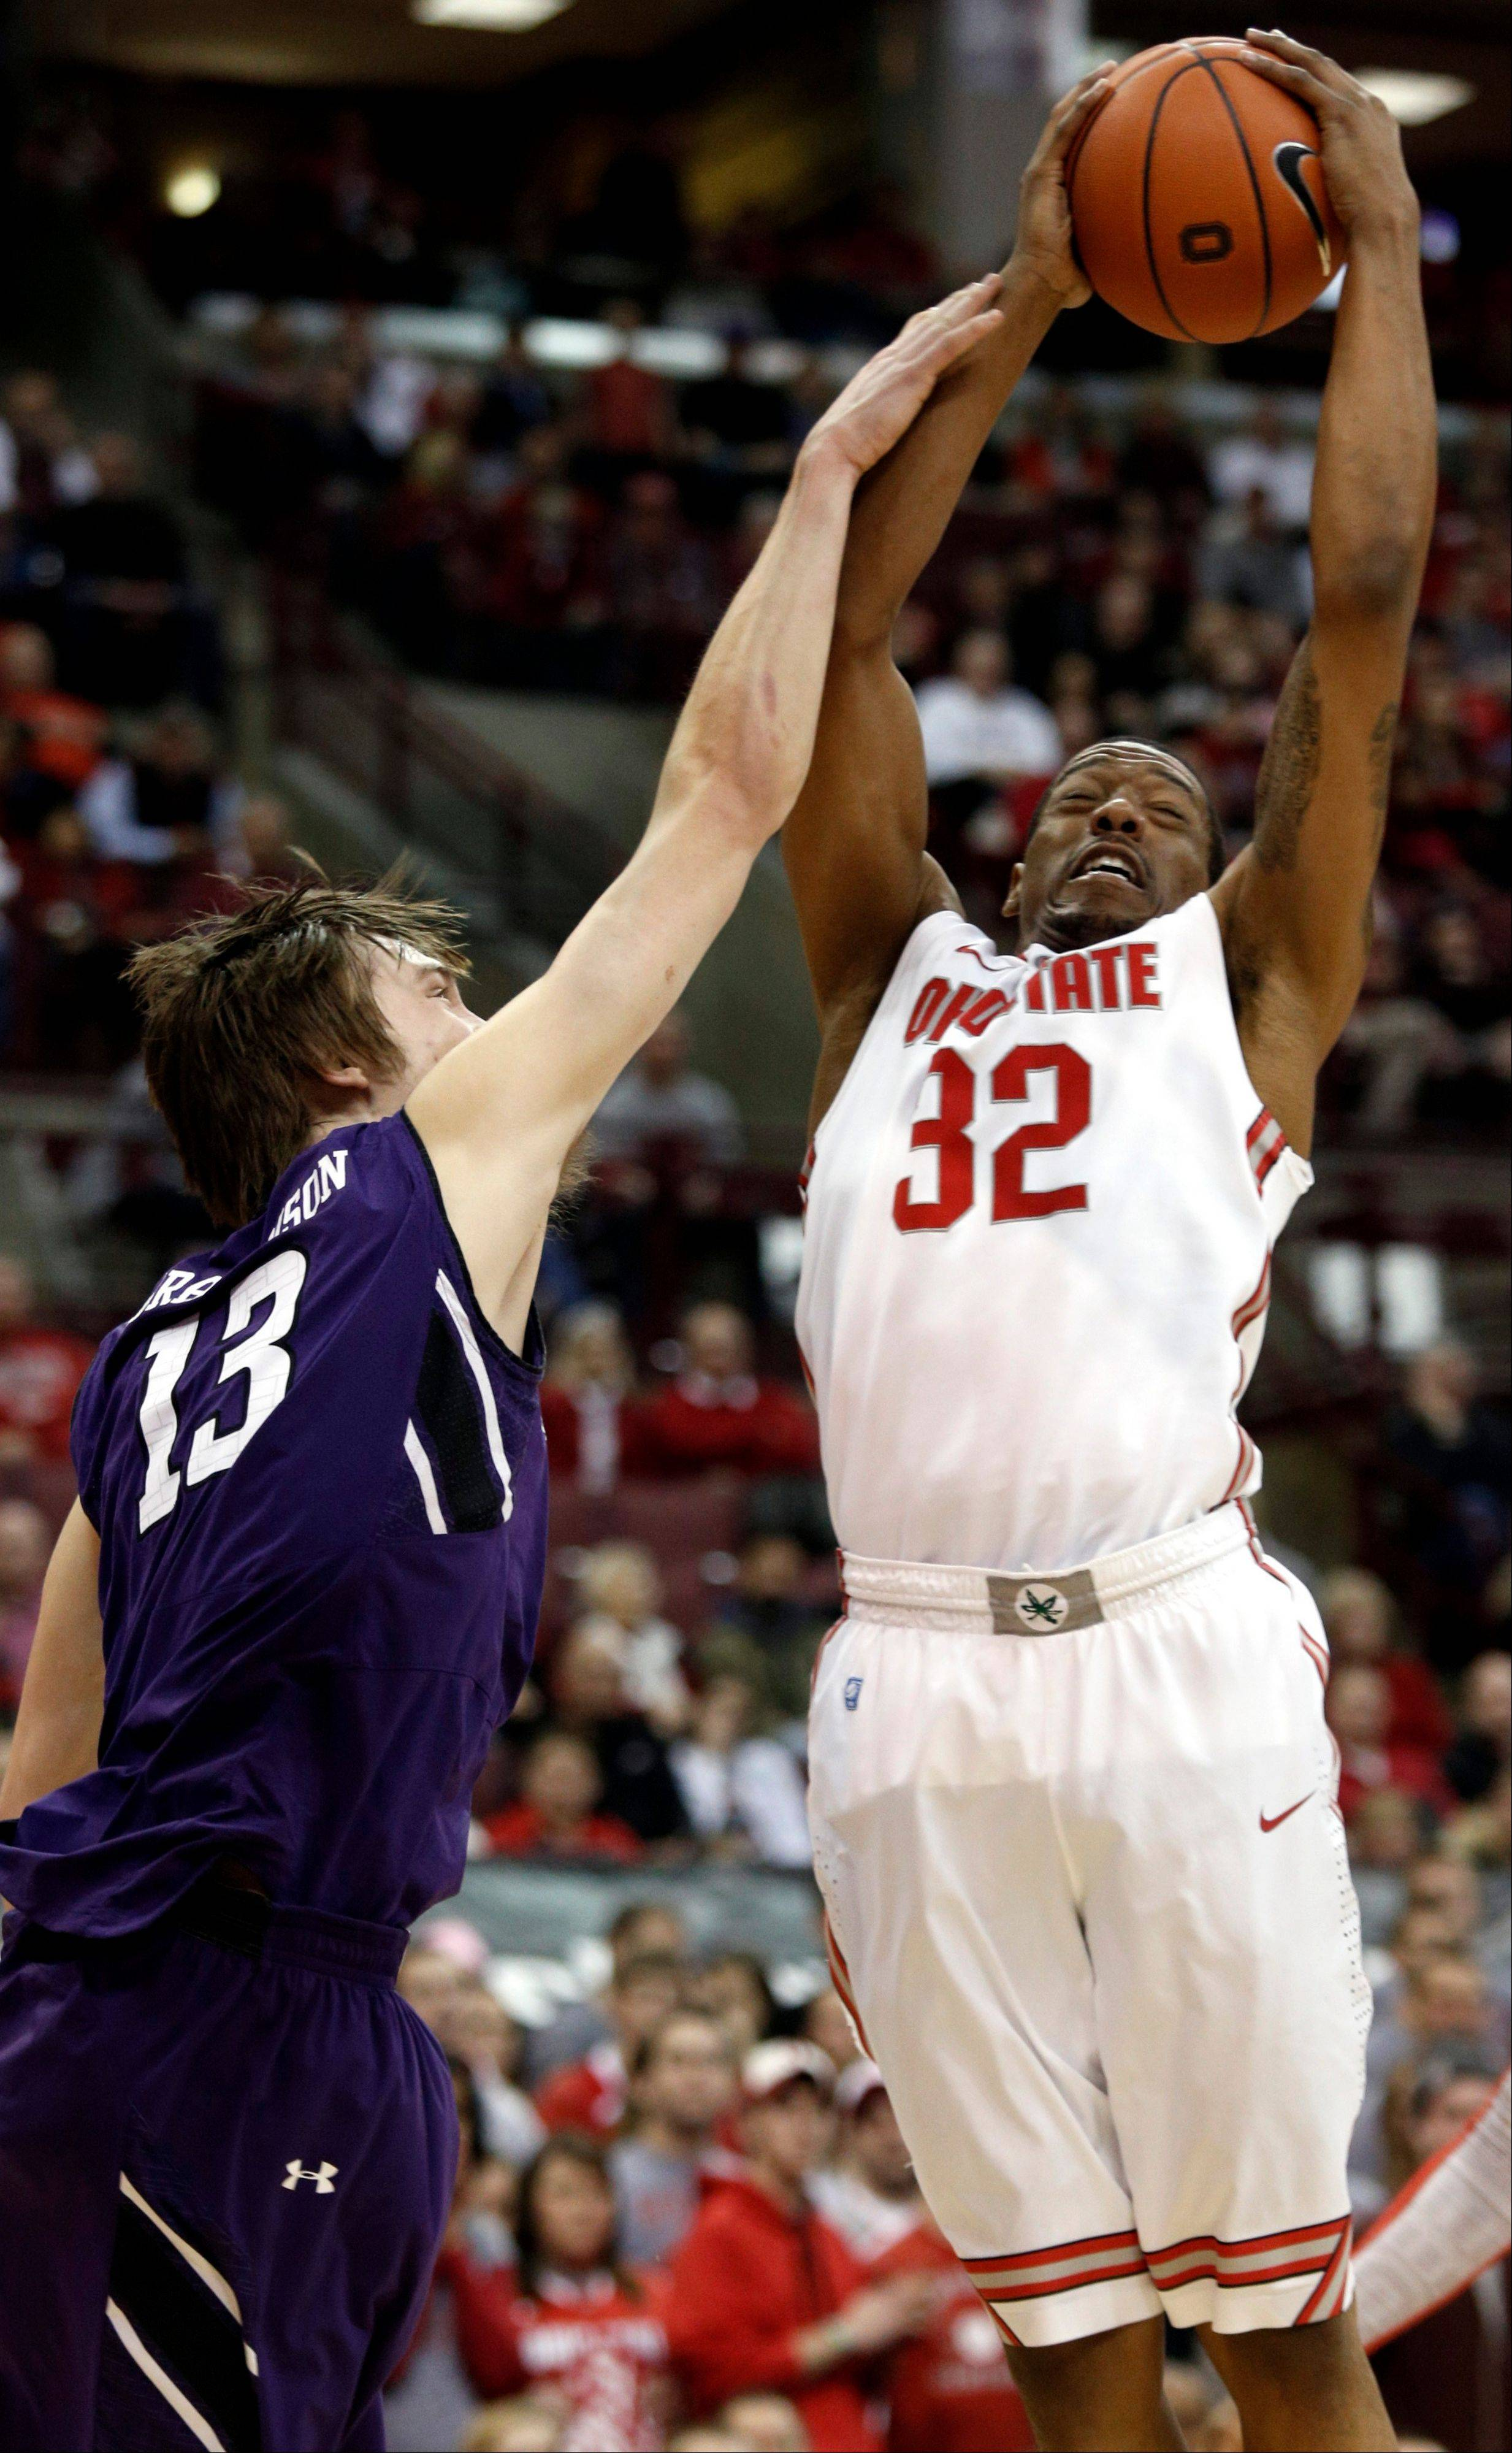 Ohio State's Lenzelle Smith Jr., right, works for a rebound against Northwestern's Kale Abrahamson during the first half of an NCAA college basketball game in Columbus, Ohio, Thursday, Feb. 14, 2013.